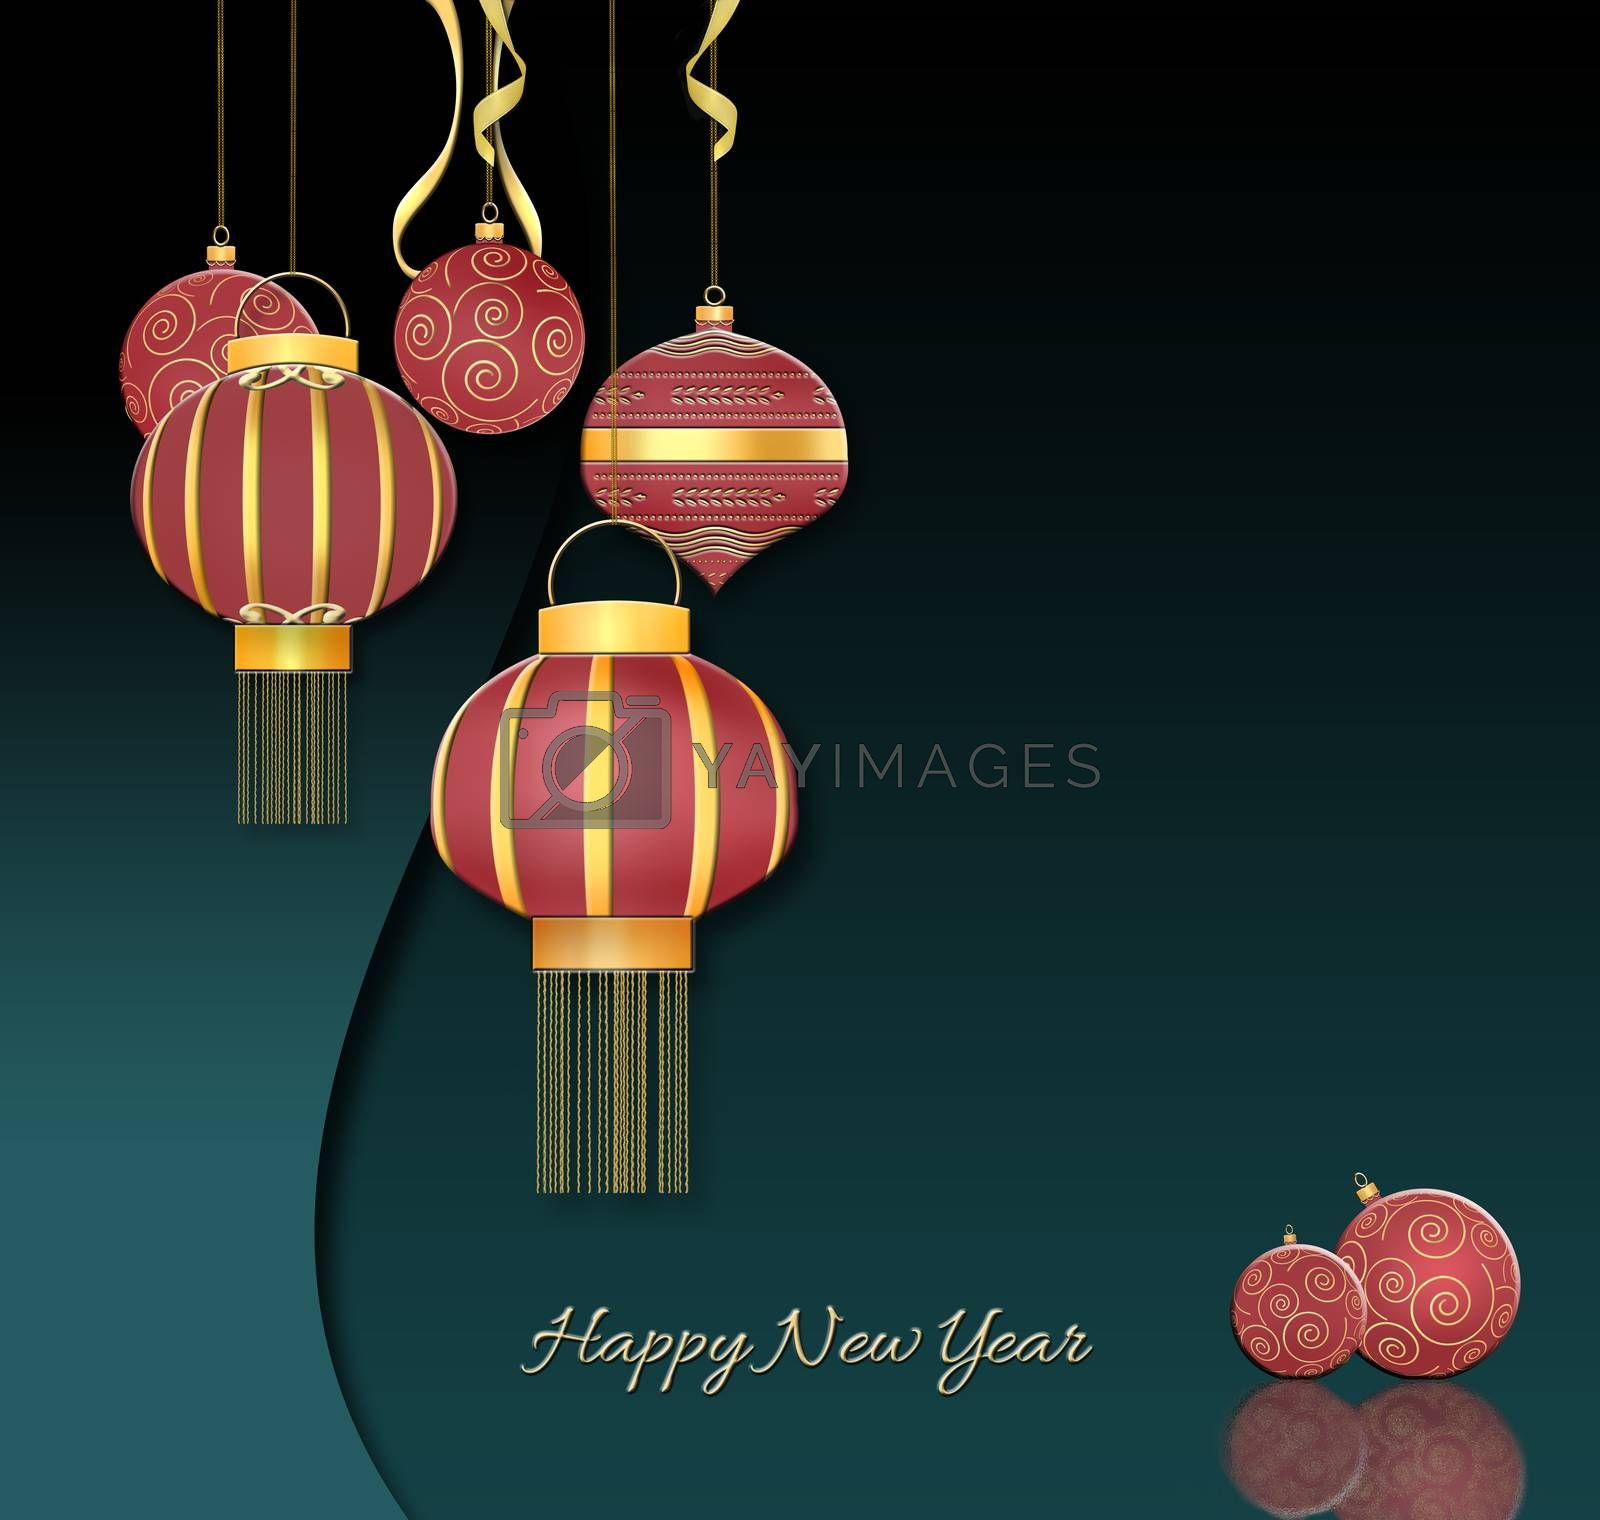 Red balls with gold ornament, Chinese style hanging red lanterns with confetti on dark green background. Chirstmas 2021 New Year card. Text Happy New Year. 3D illustration